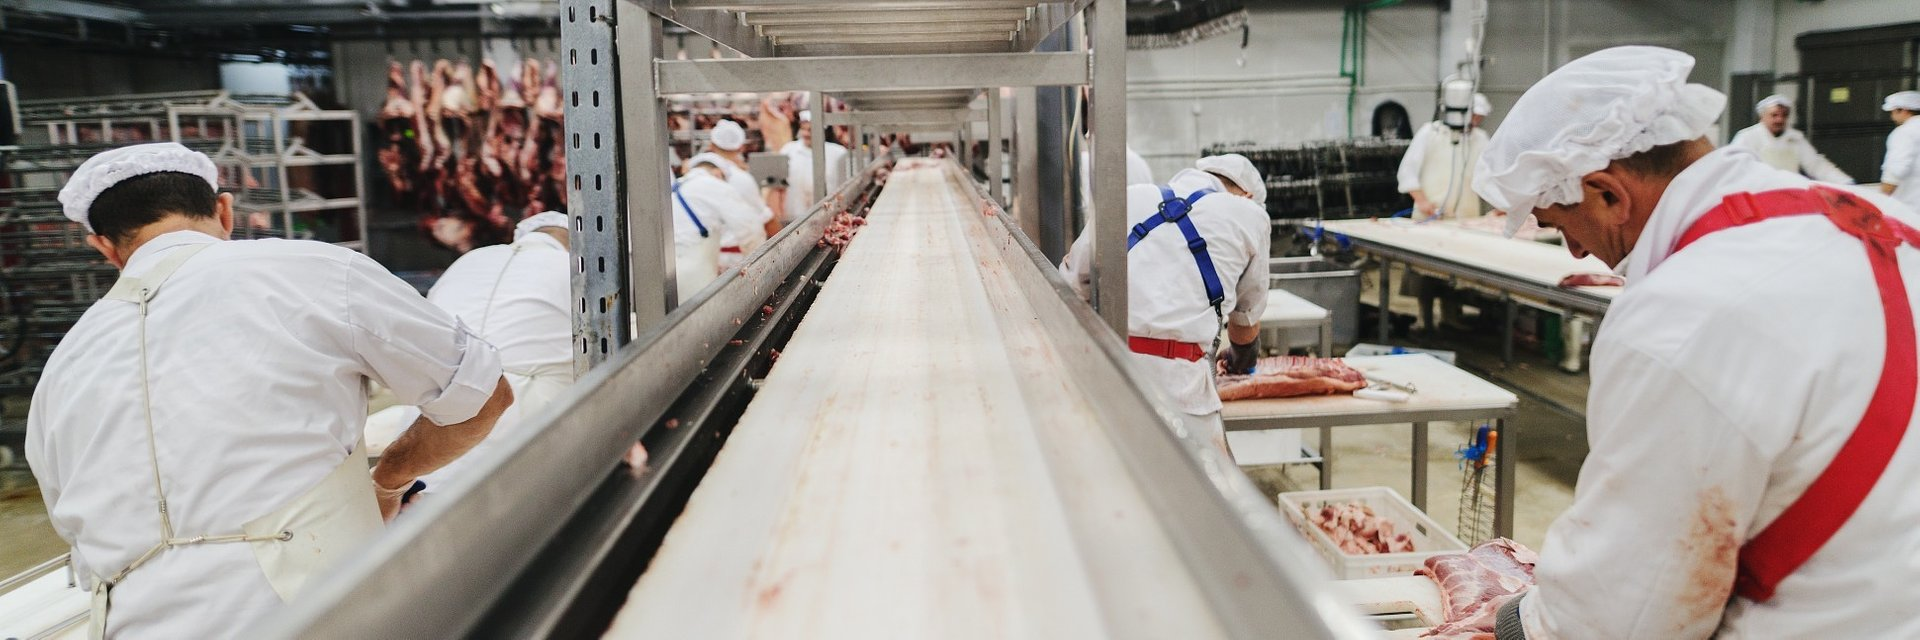 A Solution to the Food Processing Industry's Labor Shortage